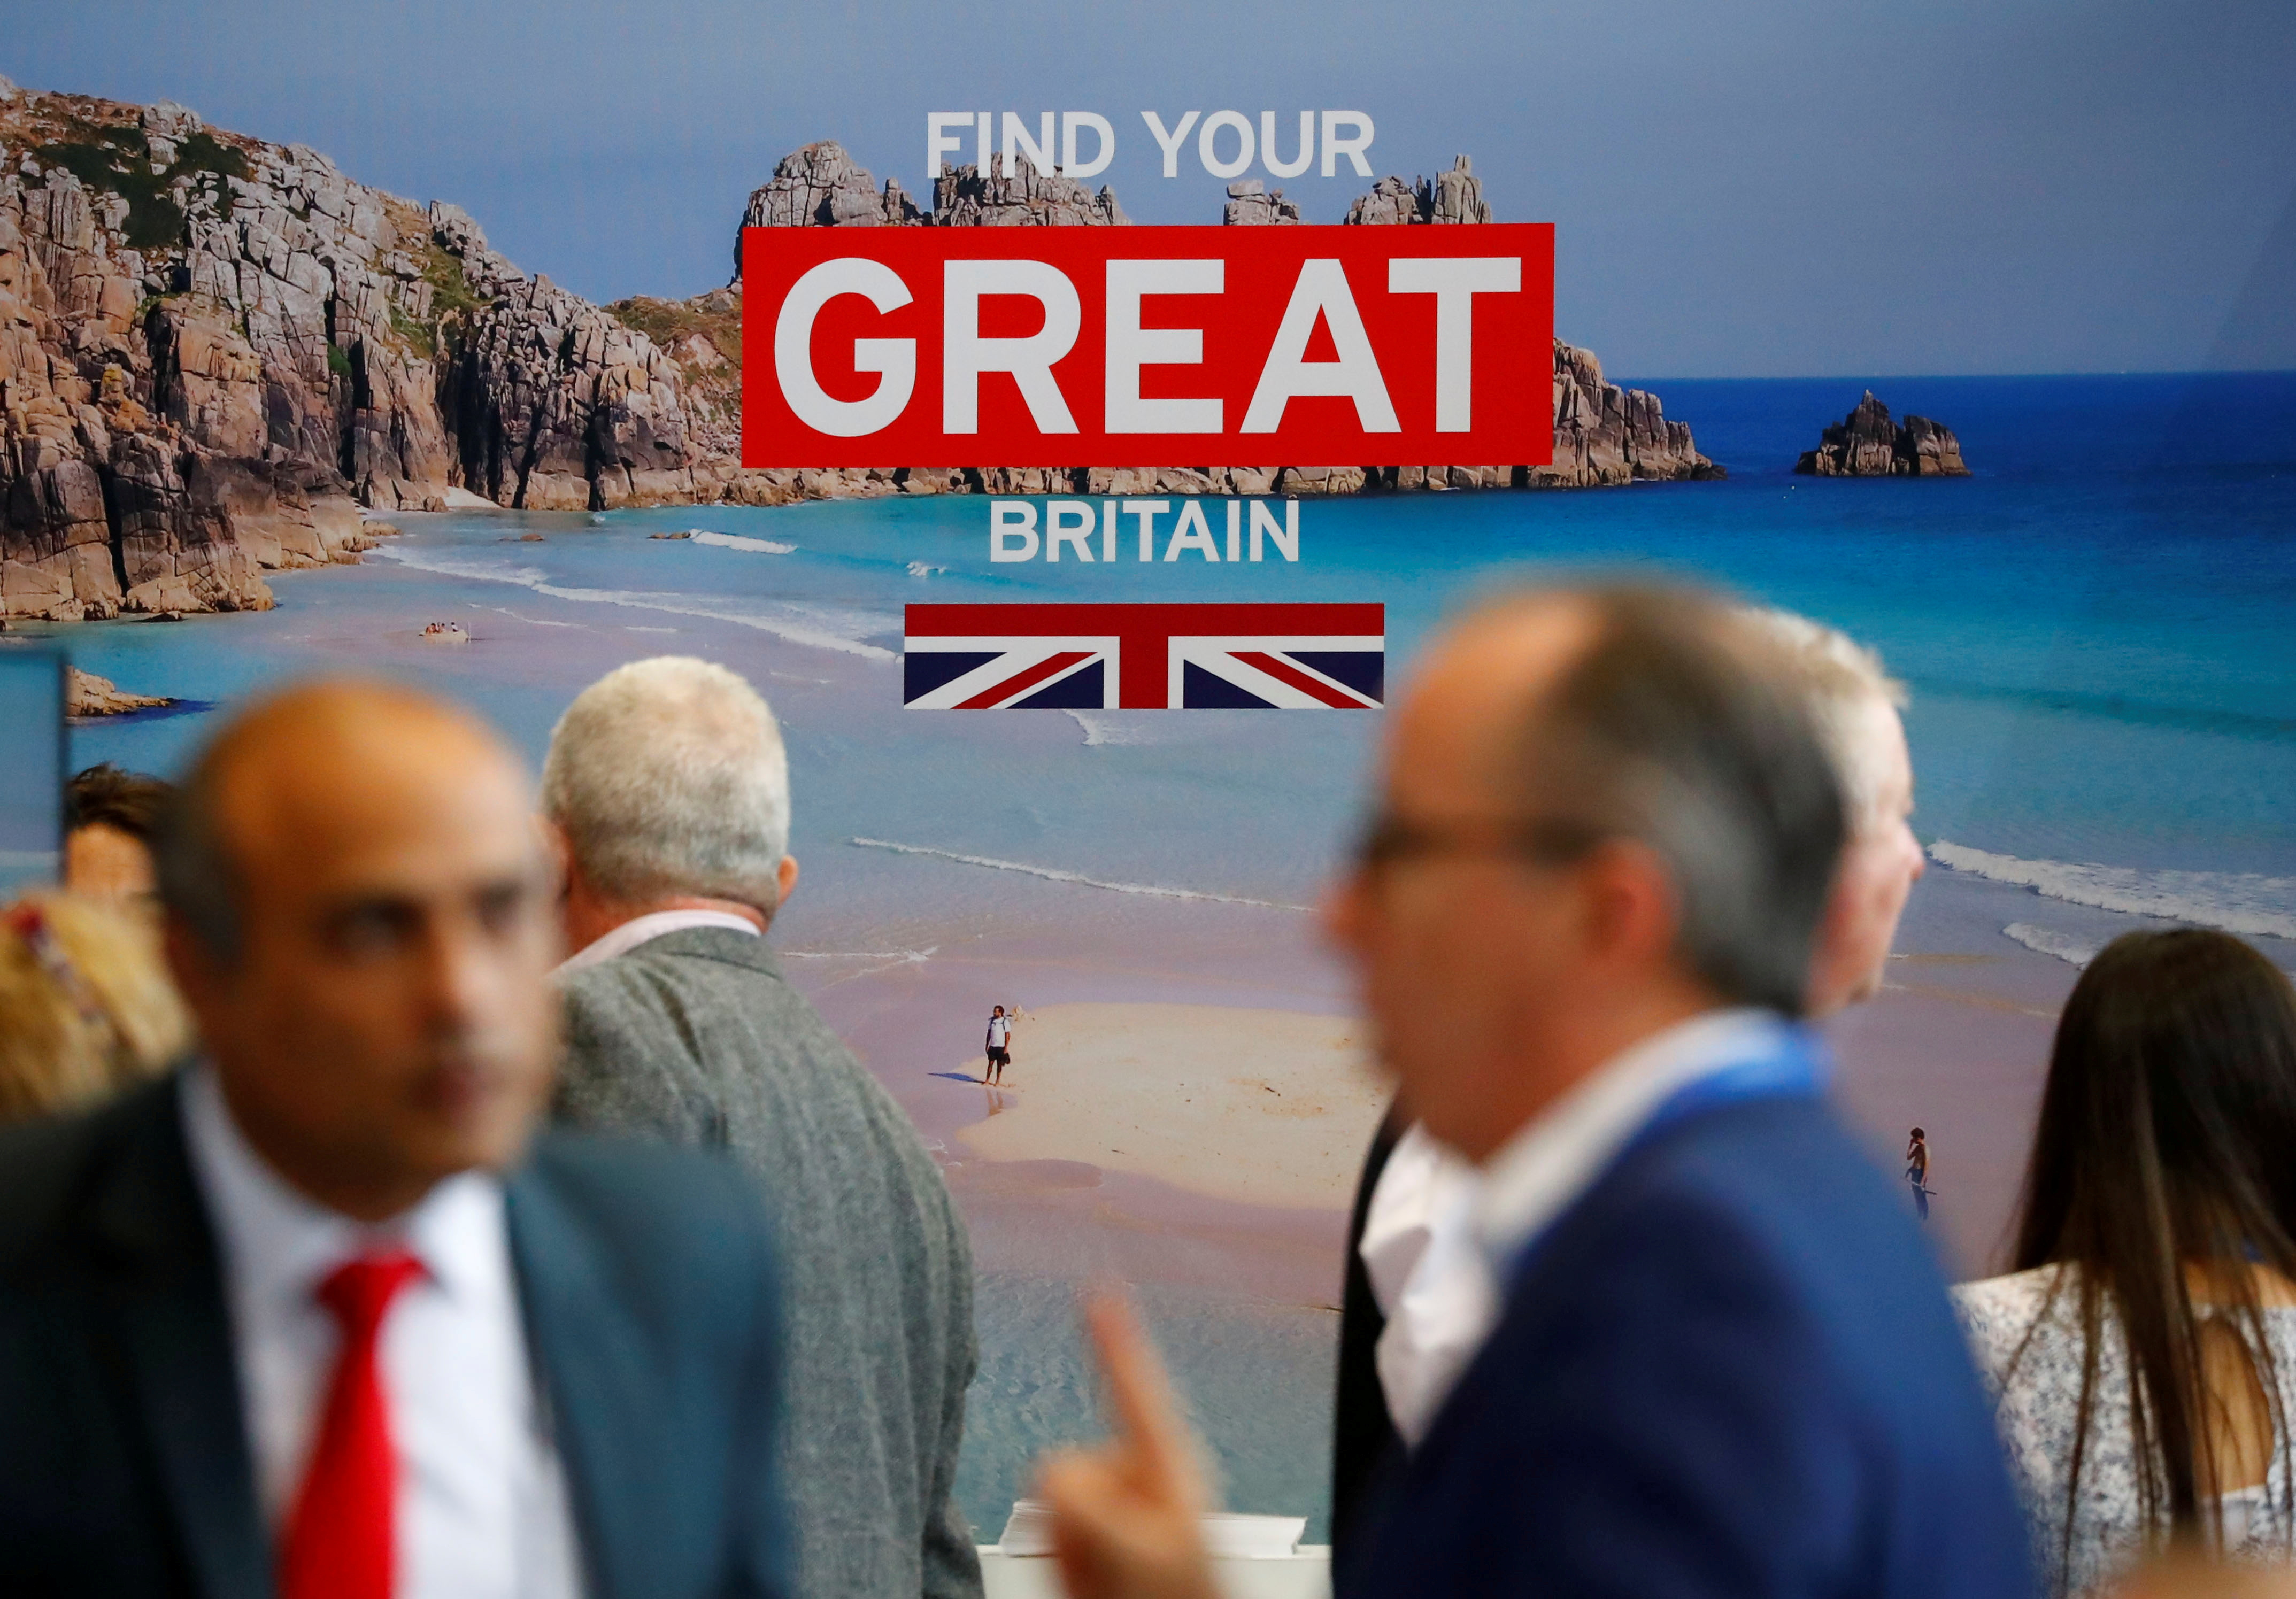 The booth of Britain is seen during the International Tourism Trade Fair ITB in Berlin, Germany, March 7, 2019.   REUTERS/Fabrizio Bensch/Files